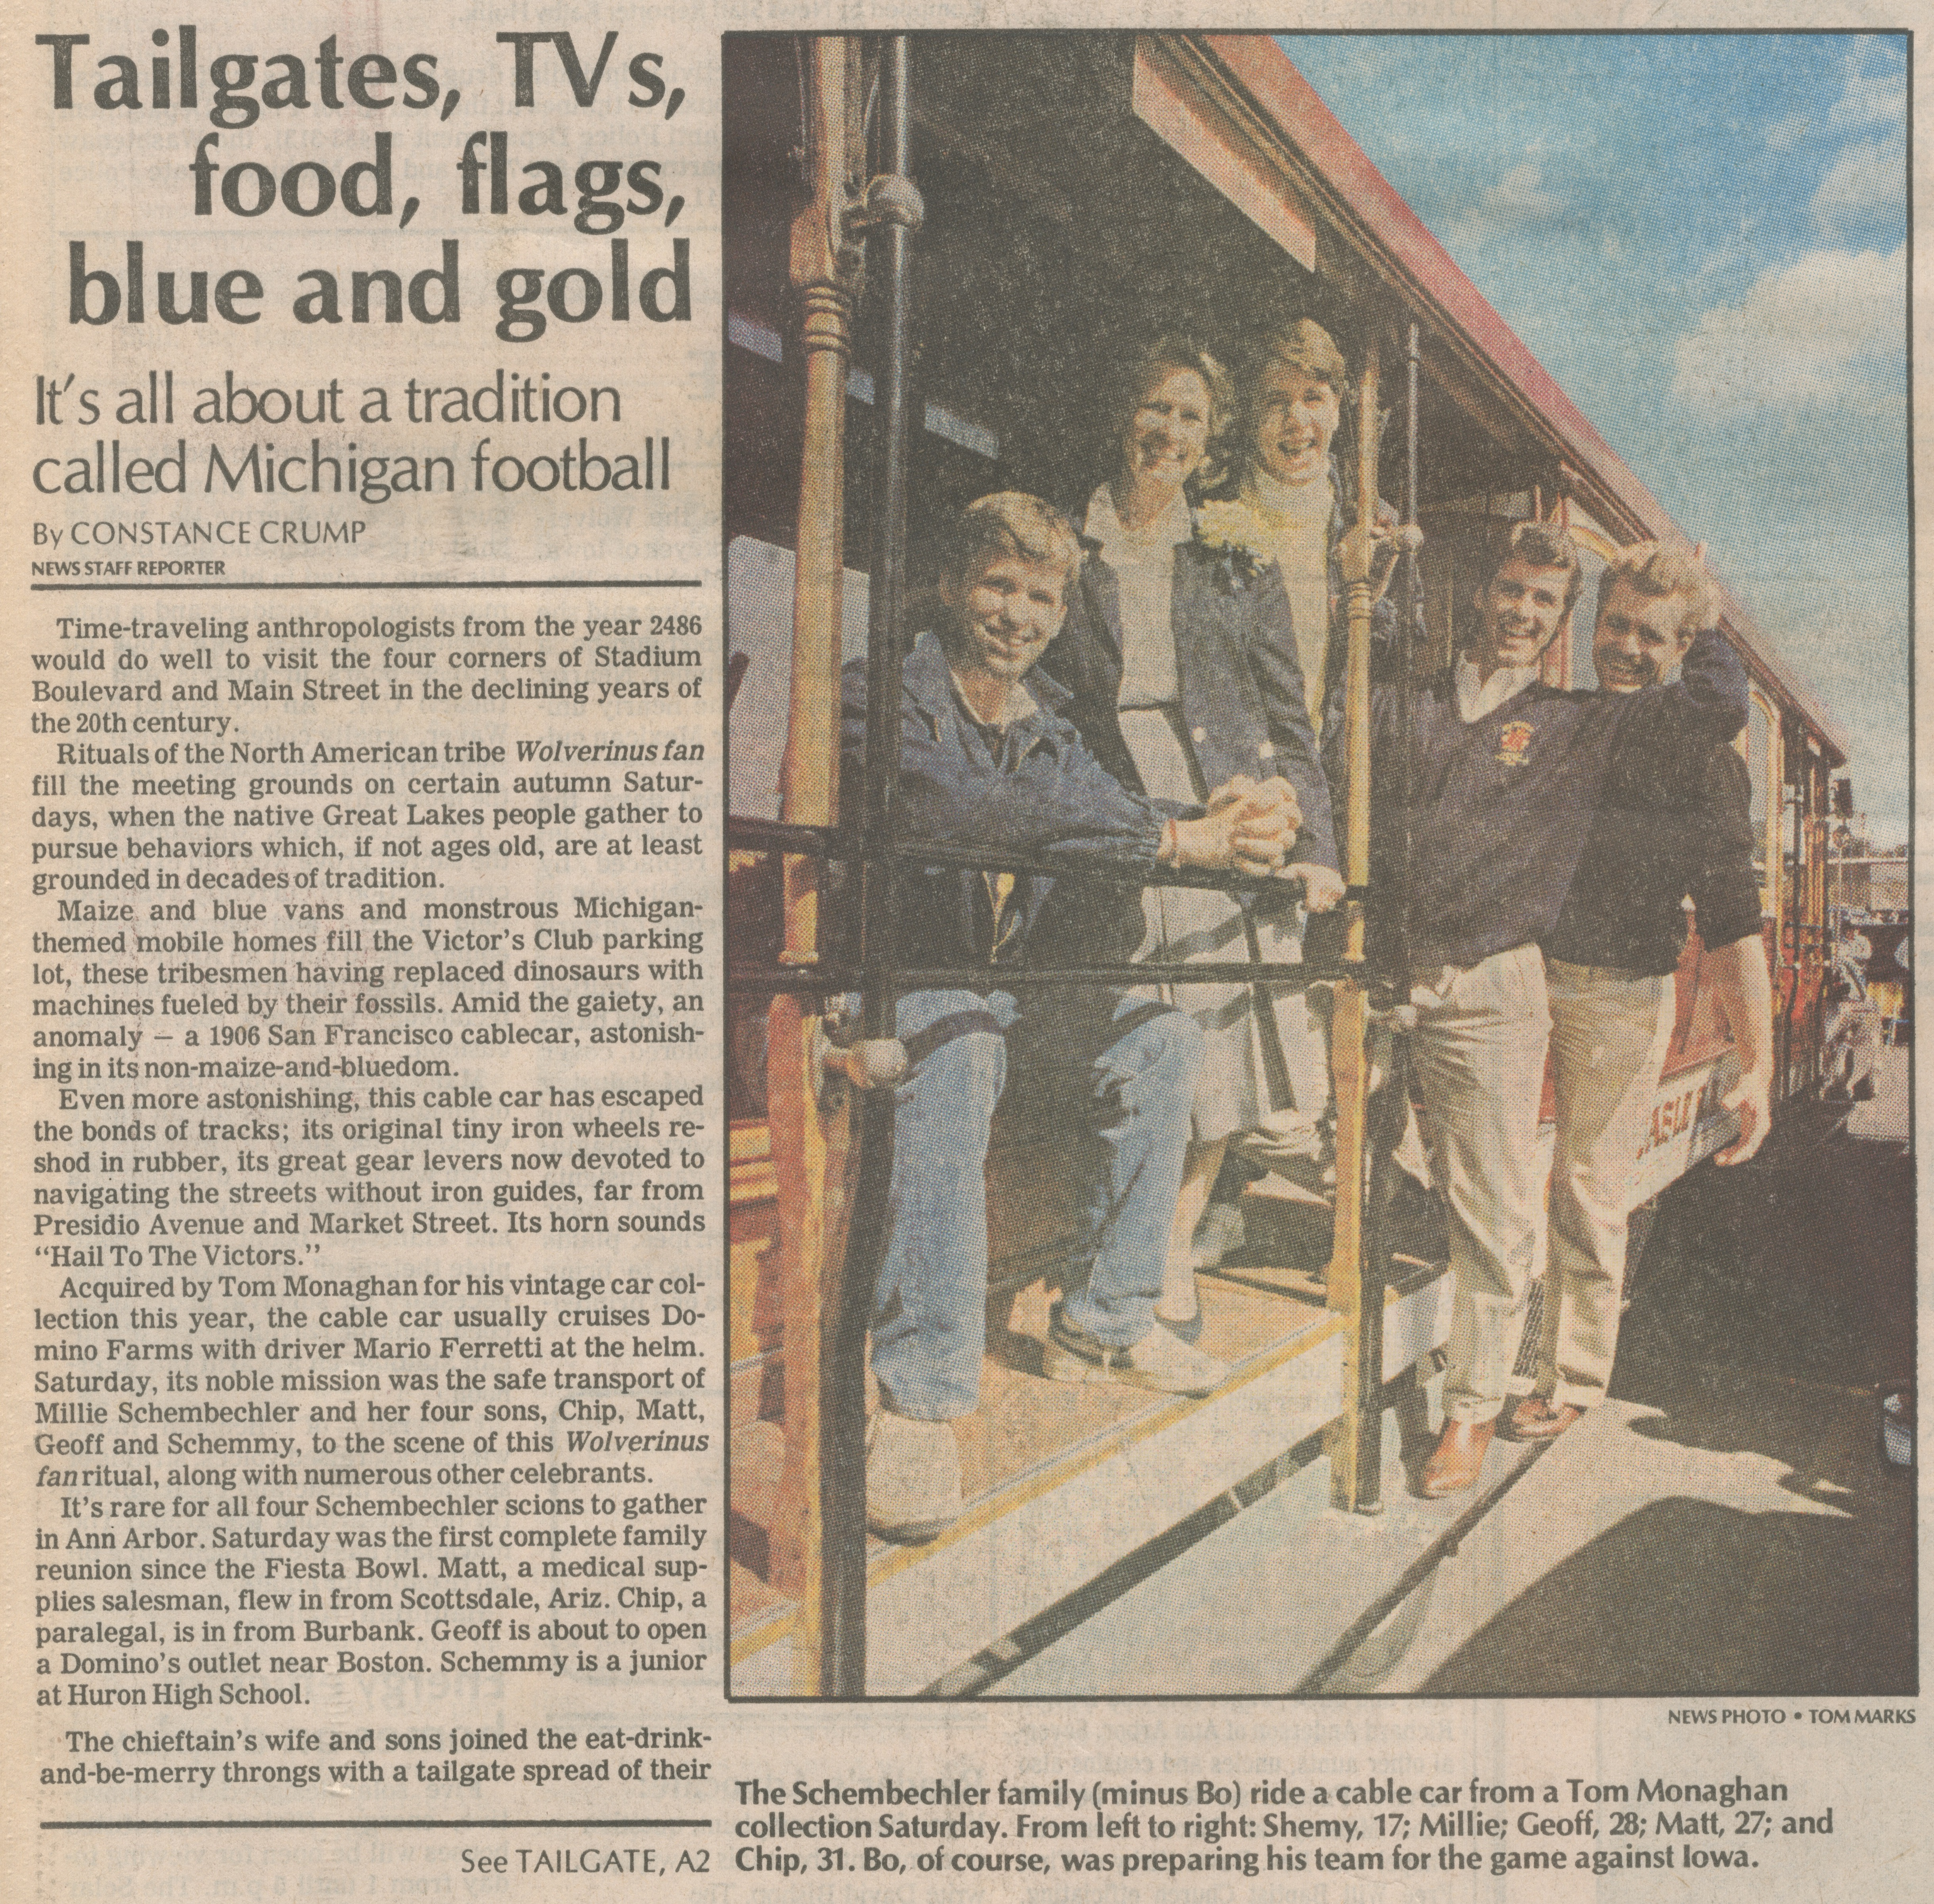 Tailgates, TVs, food, flags, blue and gold image